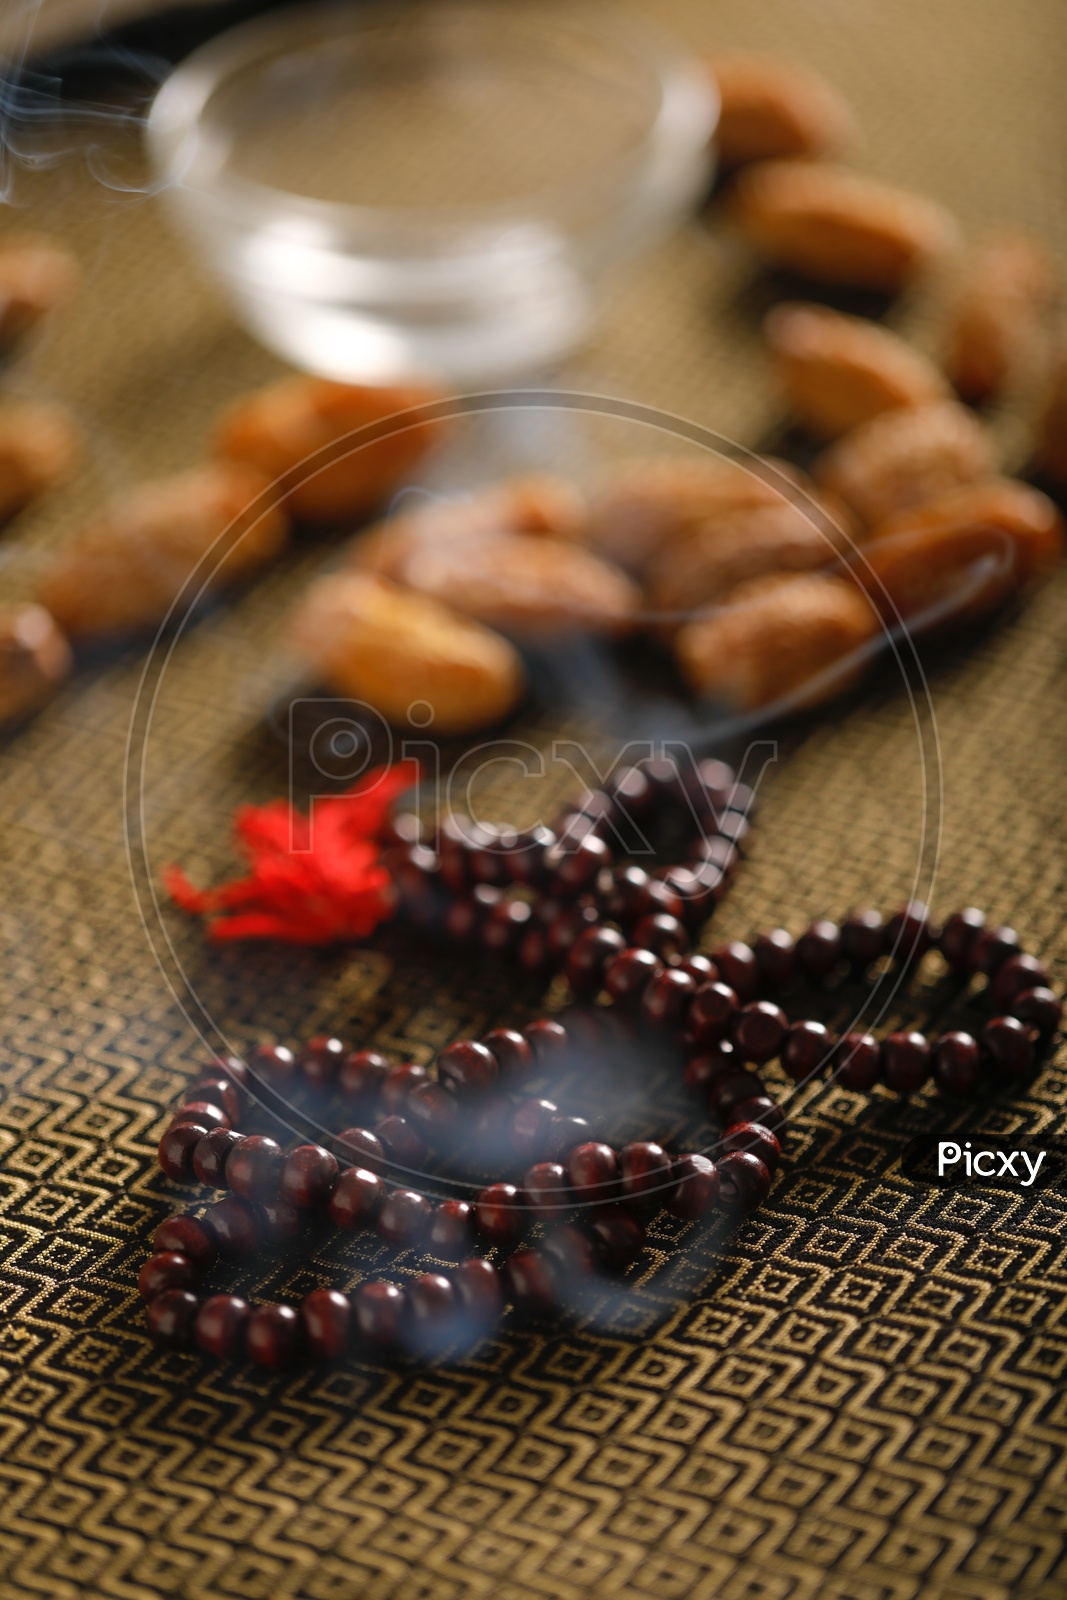 Dry Date Fruits  With Islamic Prayer beads on an Artistic Background   Backgrounds For Ramzan or Ramadan